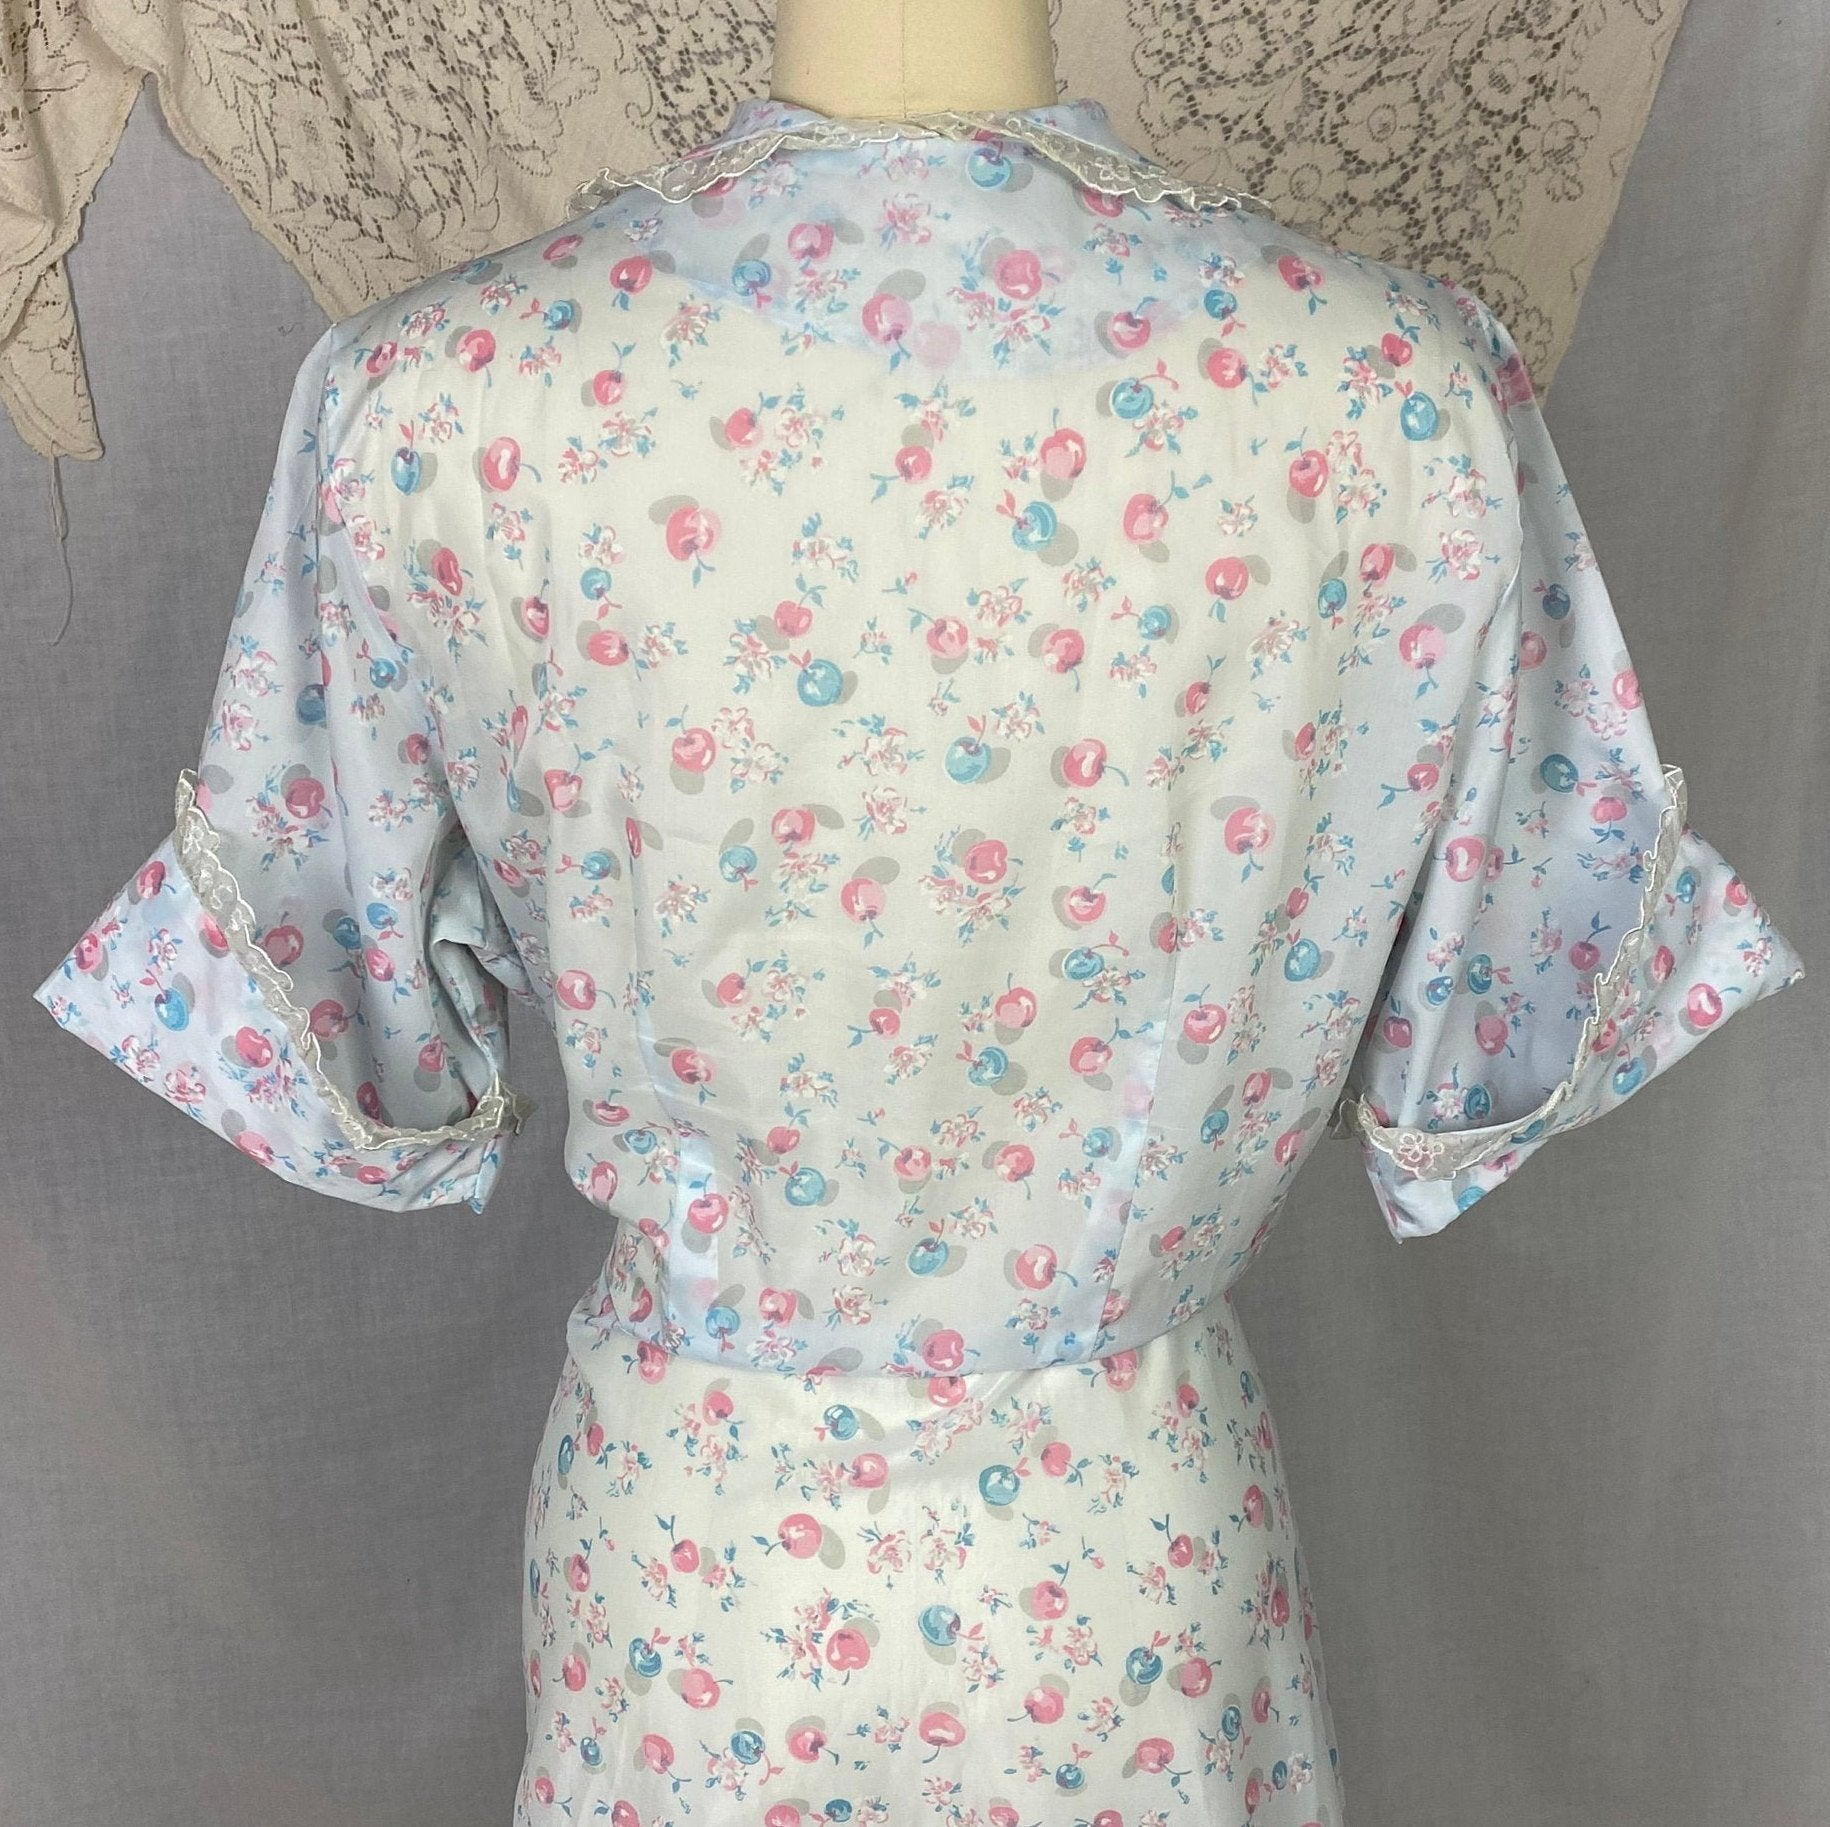 Vintage Seersucker Robe - 1950's | Semi Sheer Dusty Blue Nylon with Cherry Print & Chiffon Lace | Size LG, XLG - Daggers & Dames